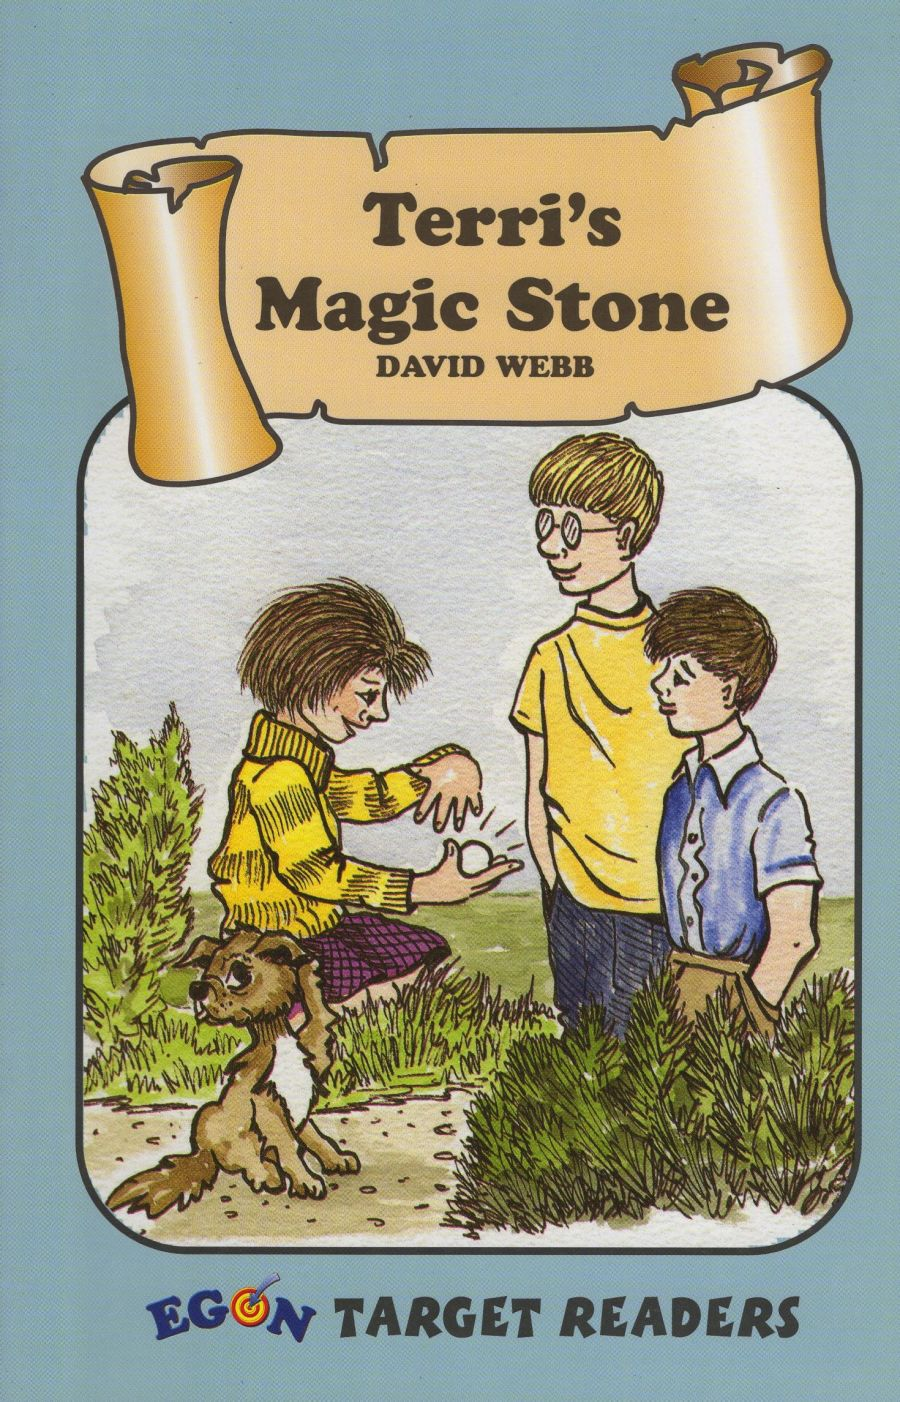 Terri's Magic Stone